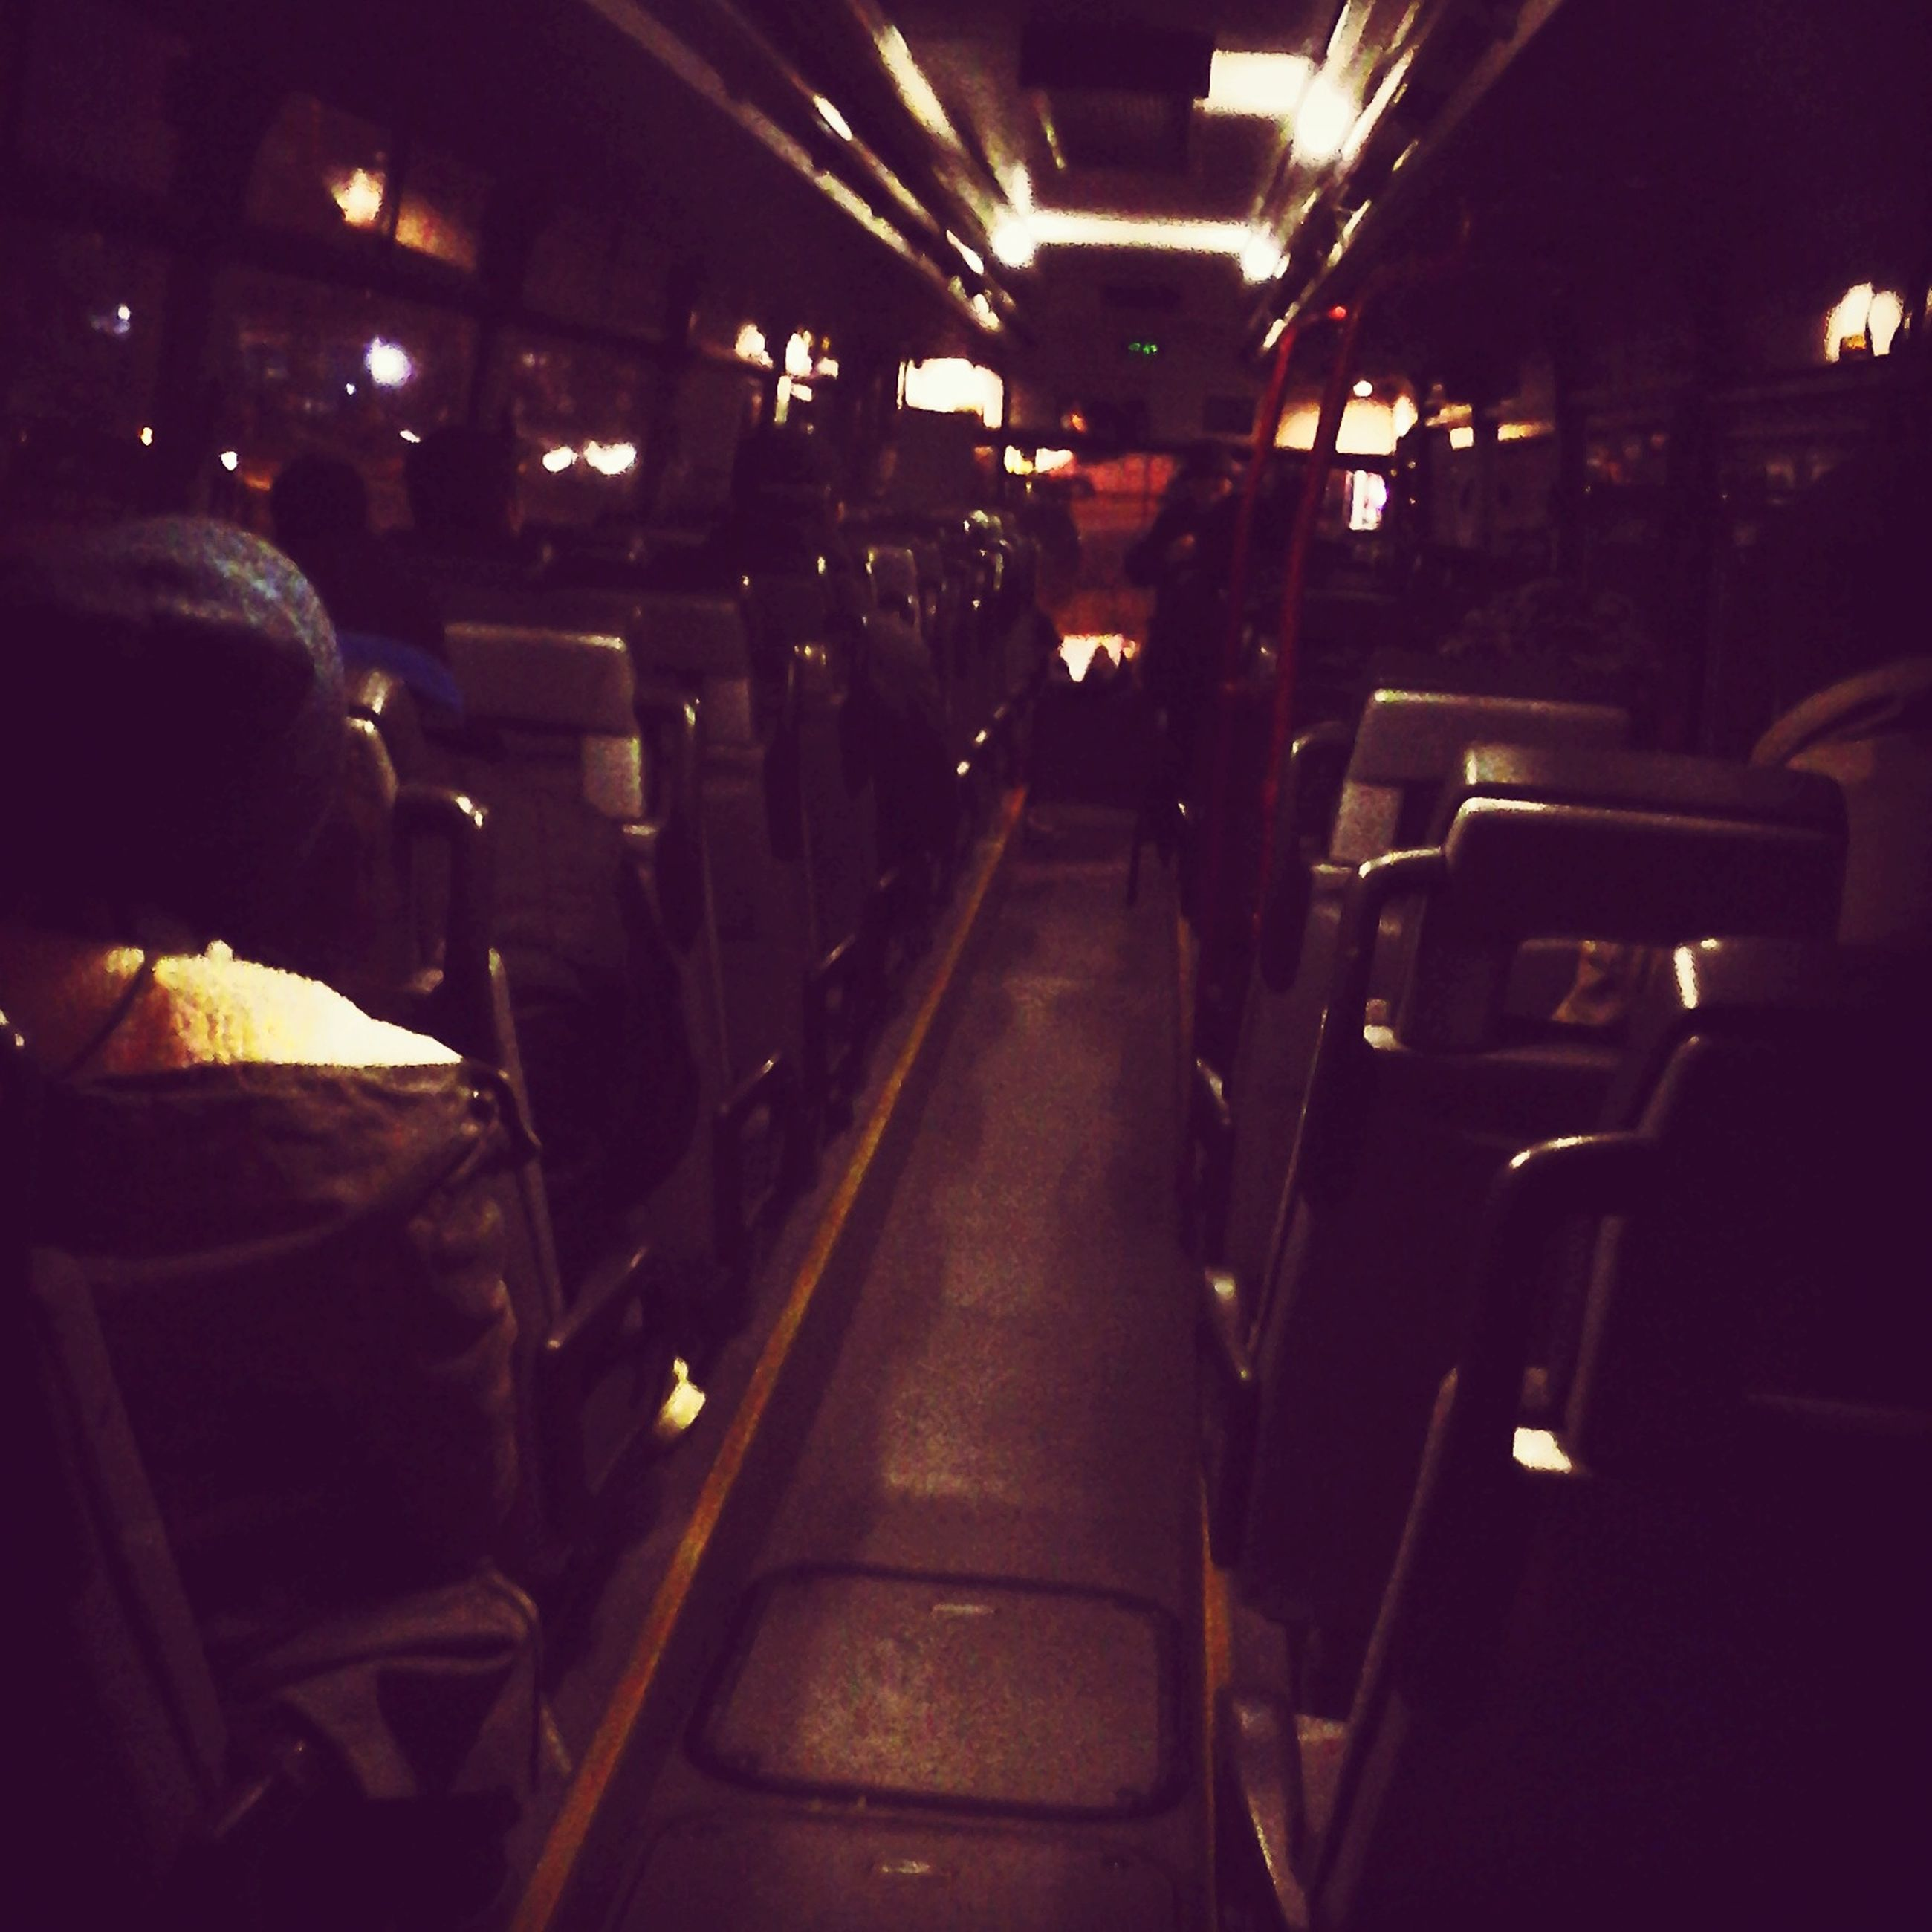 indoors, illuminated, transportation, night, men, mode of transport, incidental people, vehicle interior, vehicle seat, public transportation, travel, lifestyles, land vehicle, sitting, bus, person, rear view, unrecognizable person